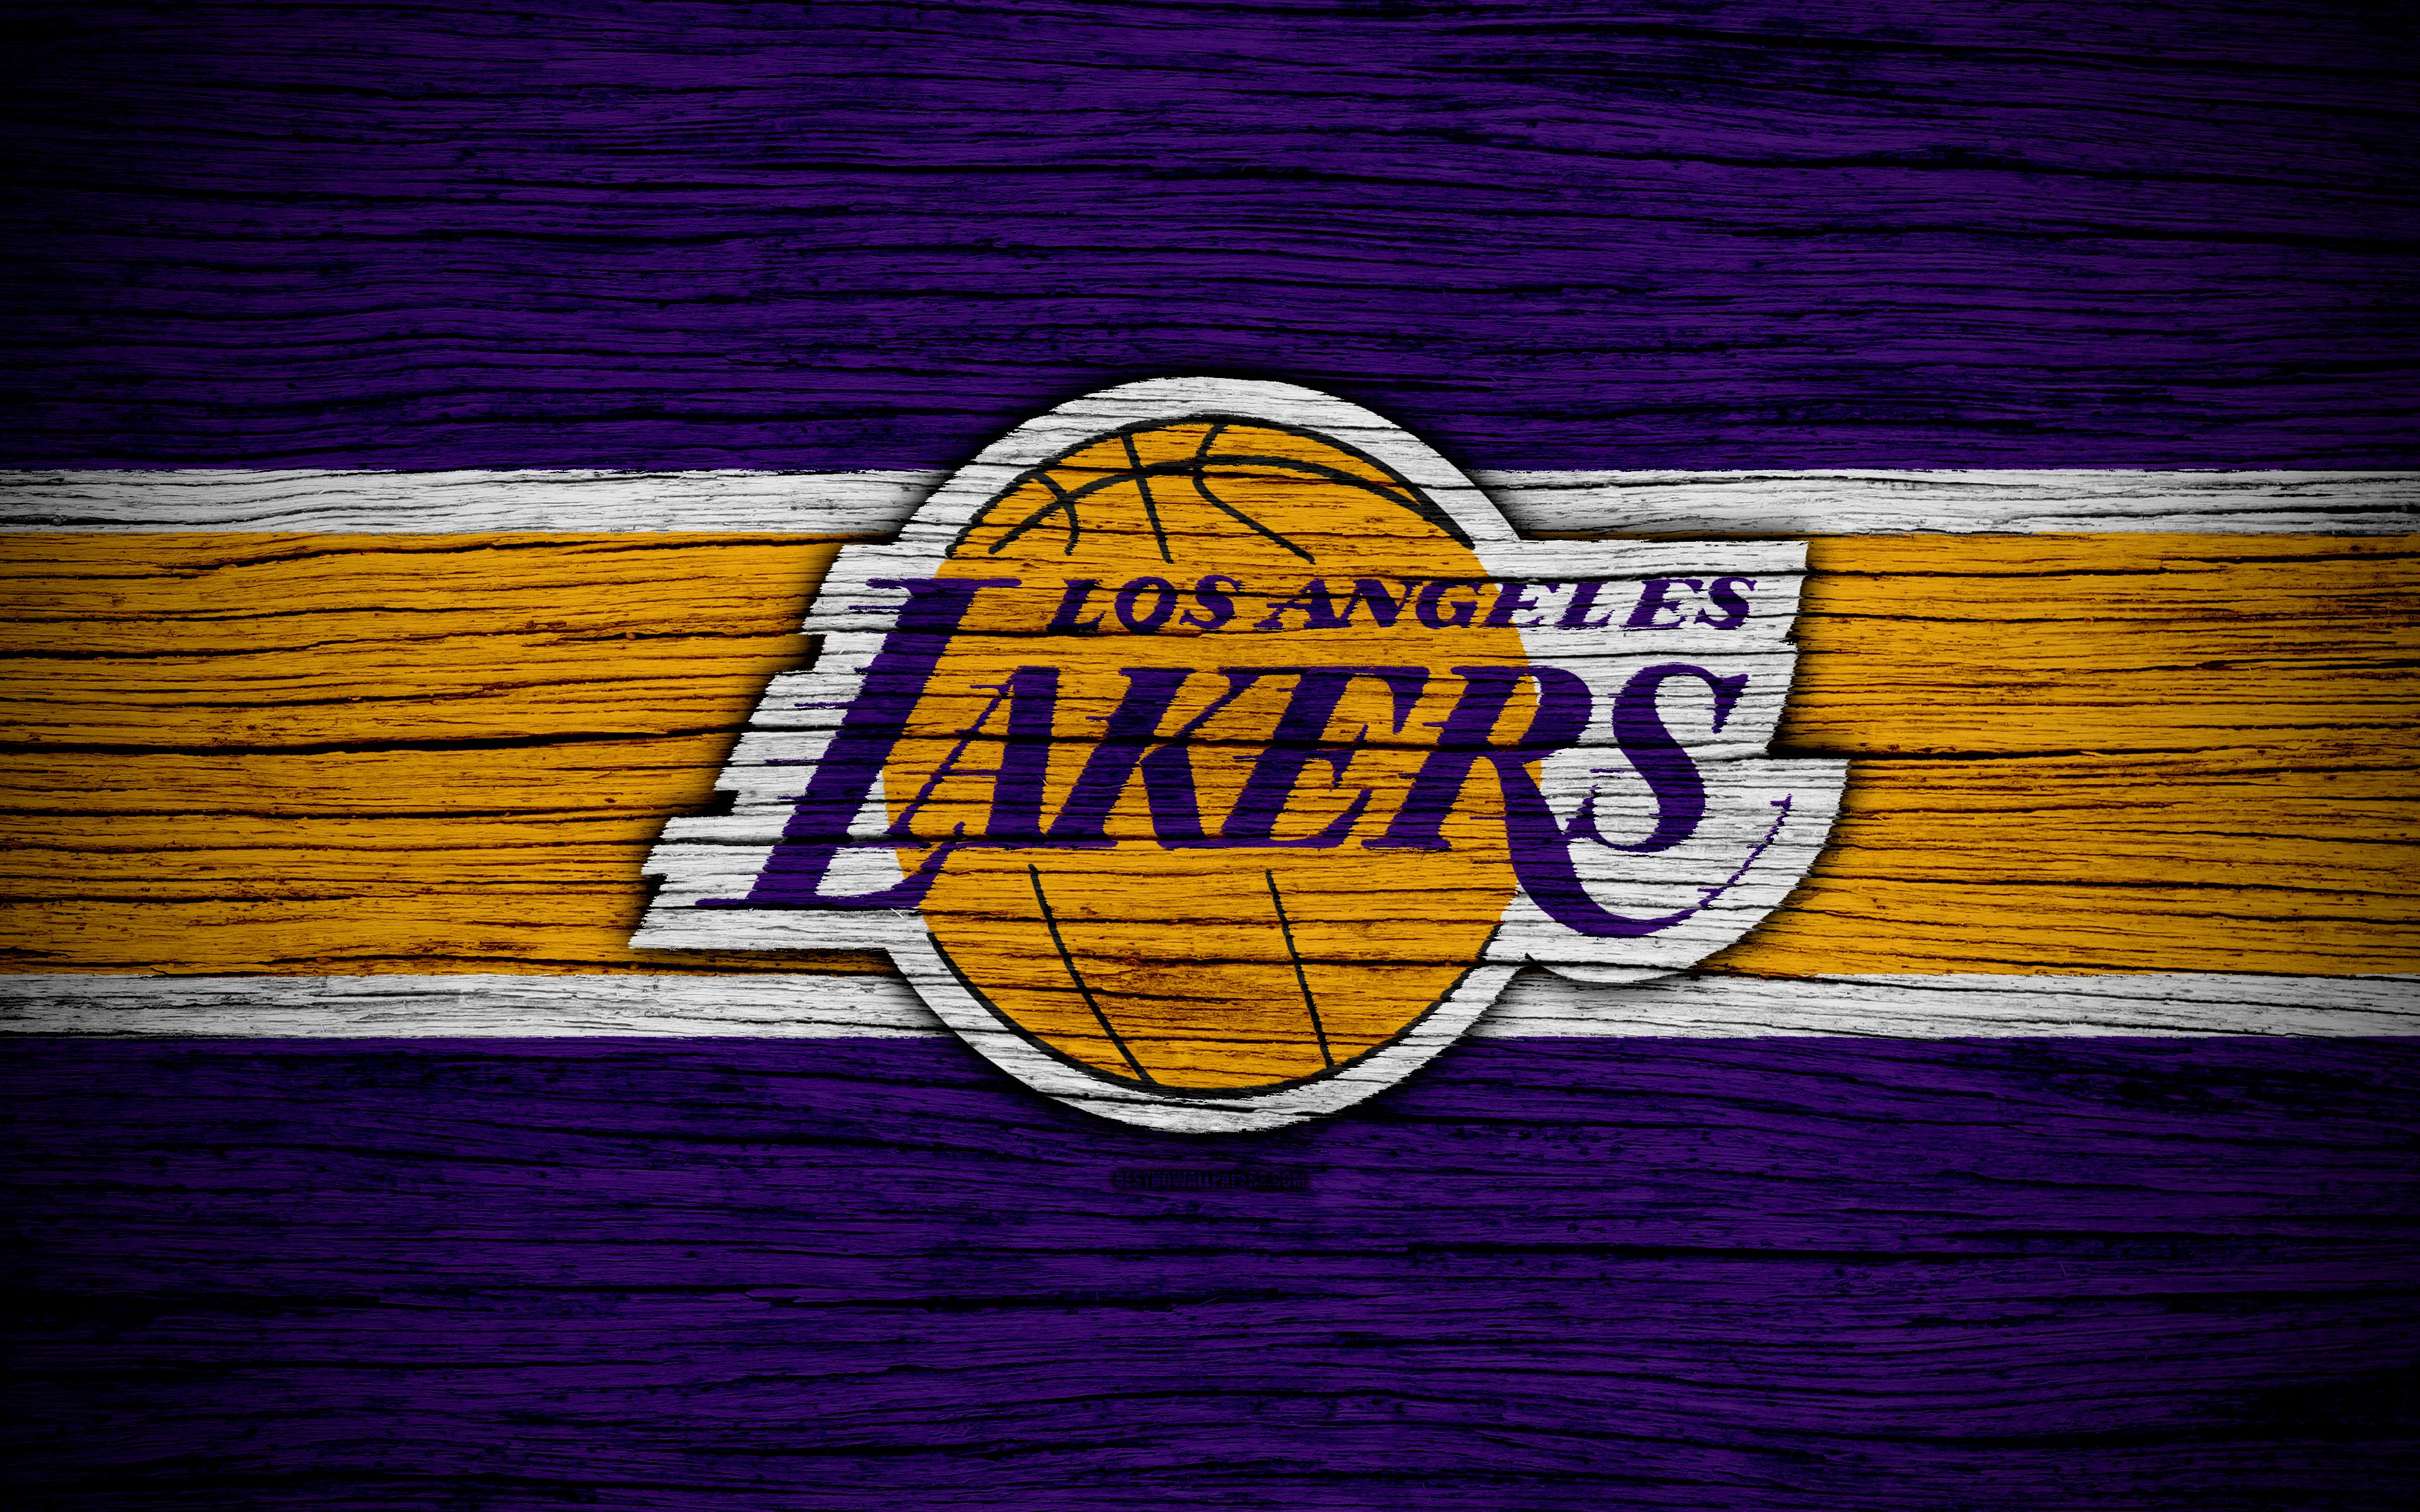 Lakers Logo Wallpapers - Top Free Lakers Logo Backgrounds - WallpaperAccess